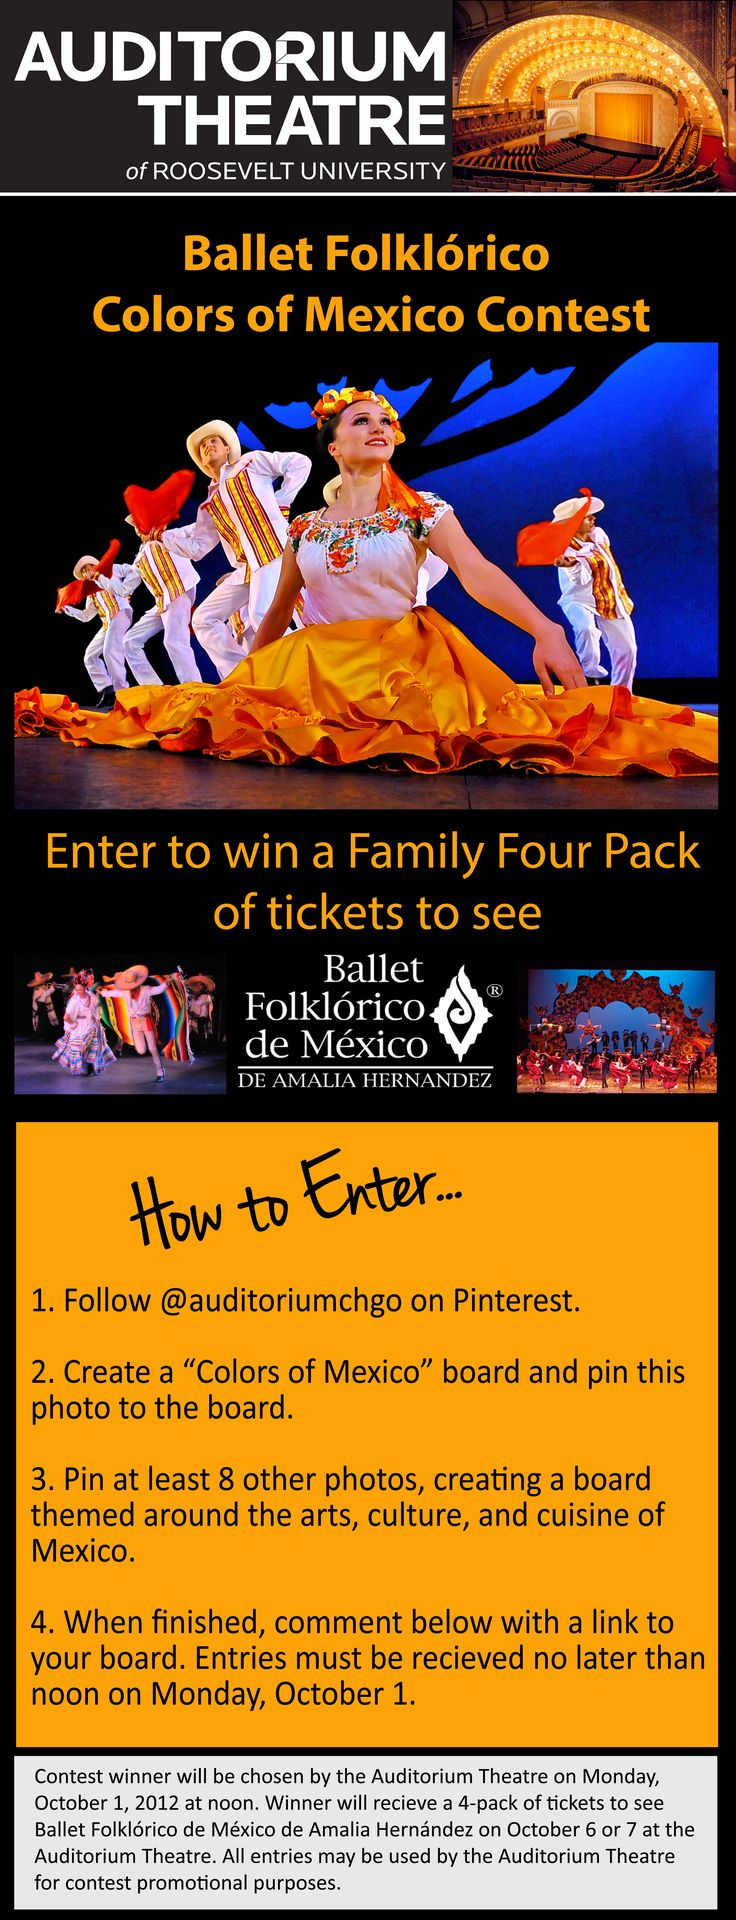 "Enter the Auditorium Theatre's ""Colors of Mexico"" Pinterest contest for a chance to win a 4-pack of tickets to see Ballet Folklórico de México de Amalia Hernández on October 6 or 7!  All entries must be received by noon on Monday, October 1, 2012."